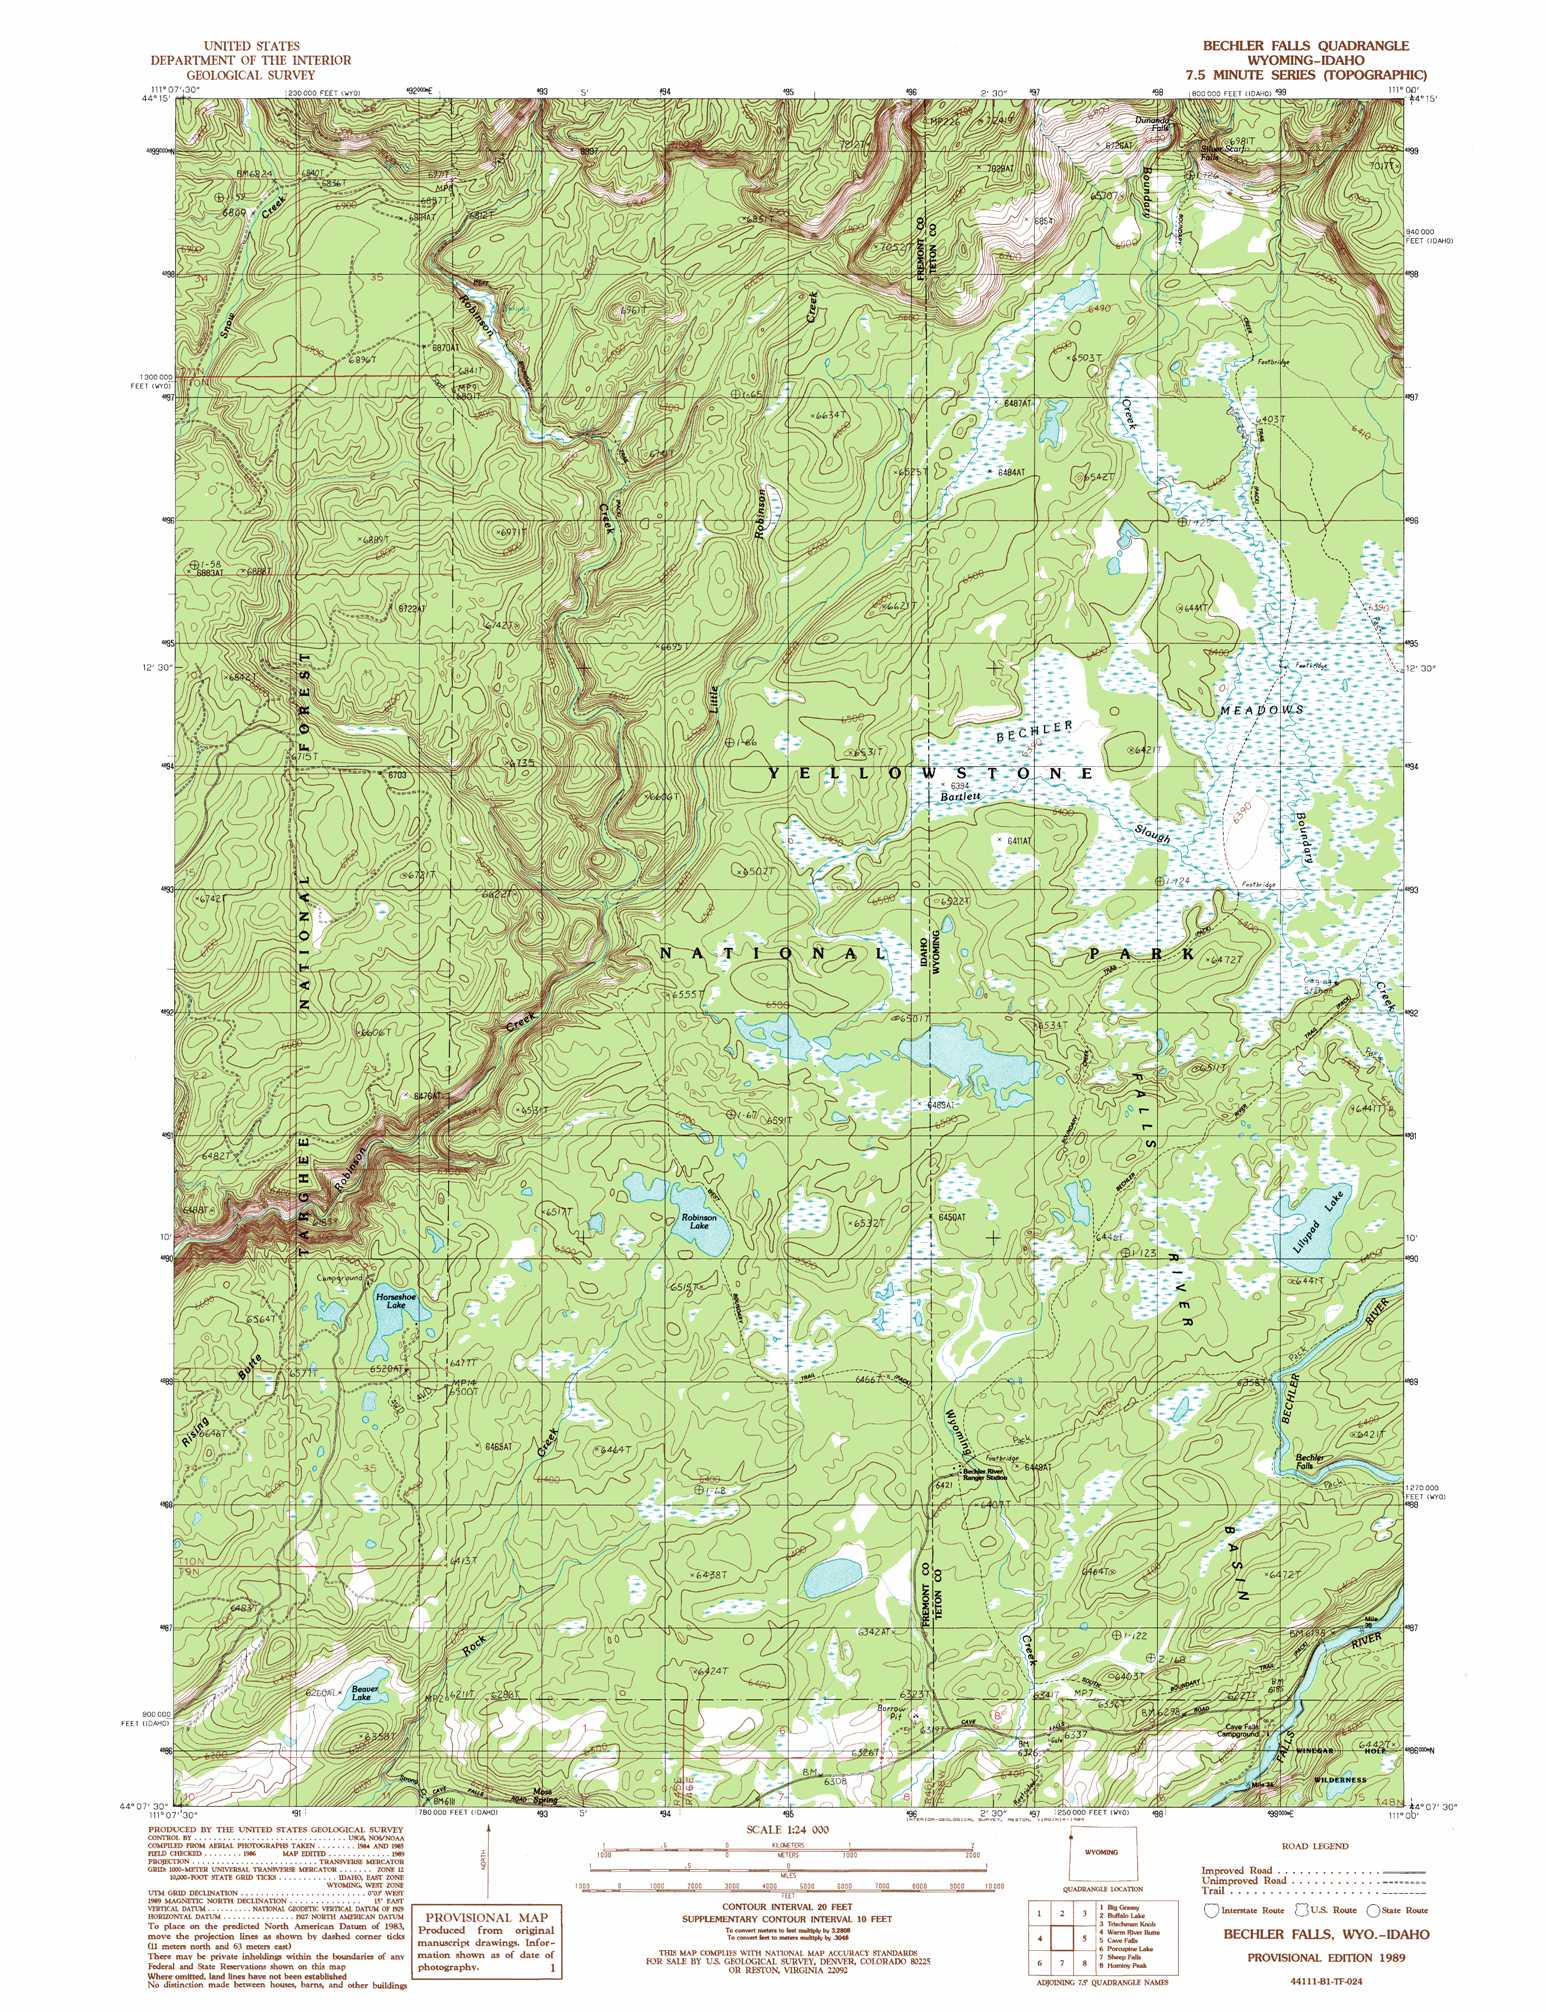 Bechler Falls topographic map, ID, WY - USGS Topo Quad 44111b1